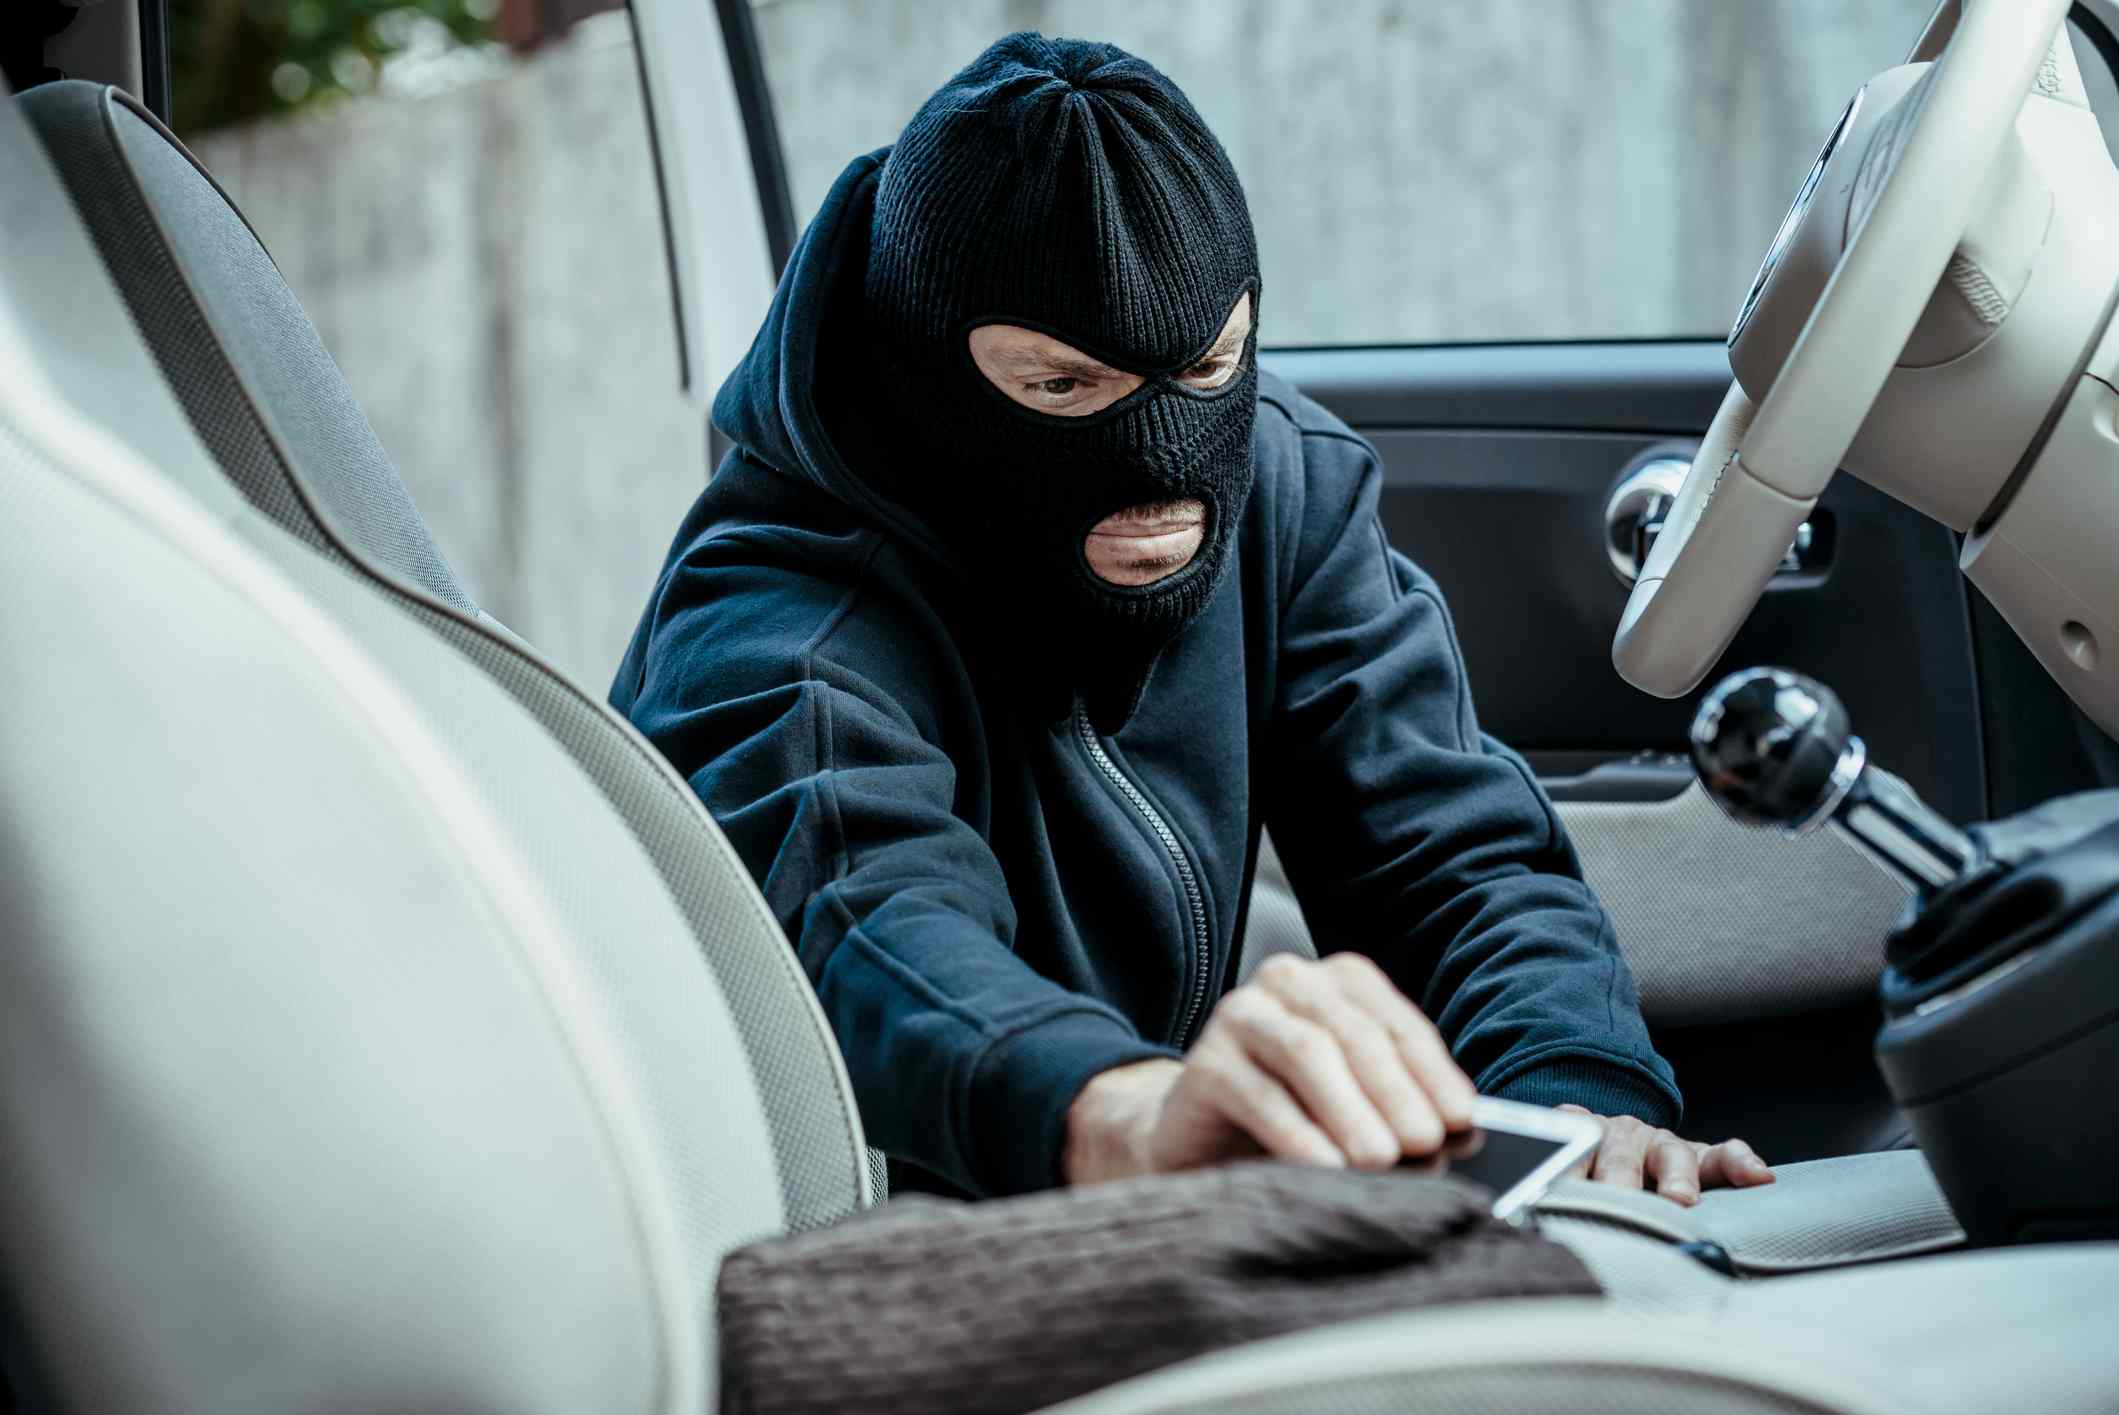 Masked person taking iPhone out of a purse in a car